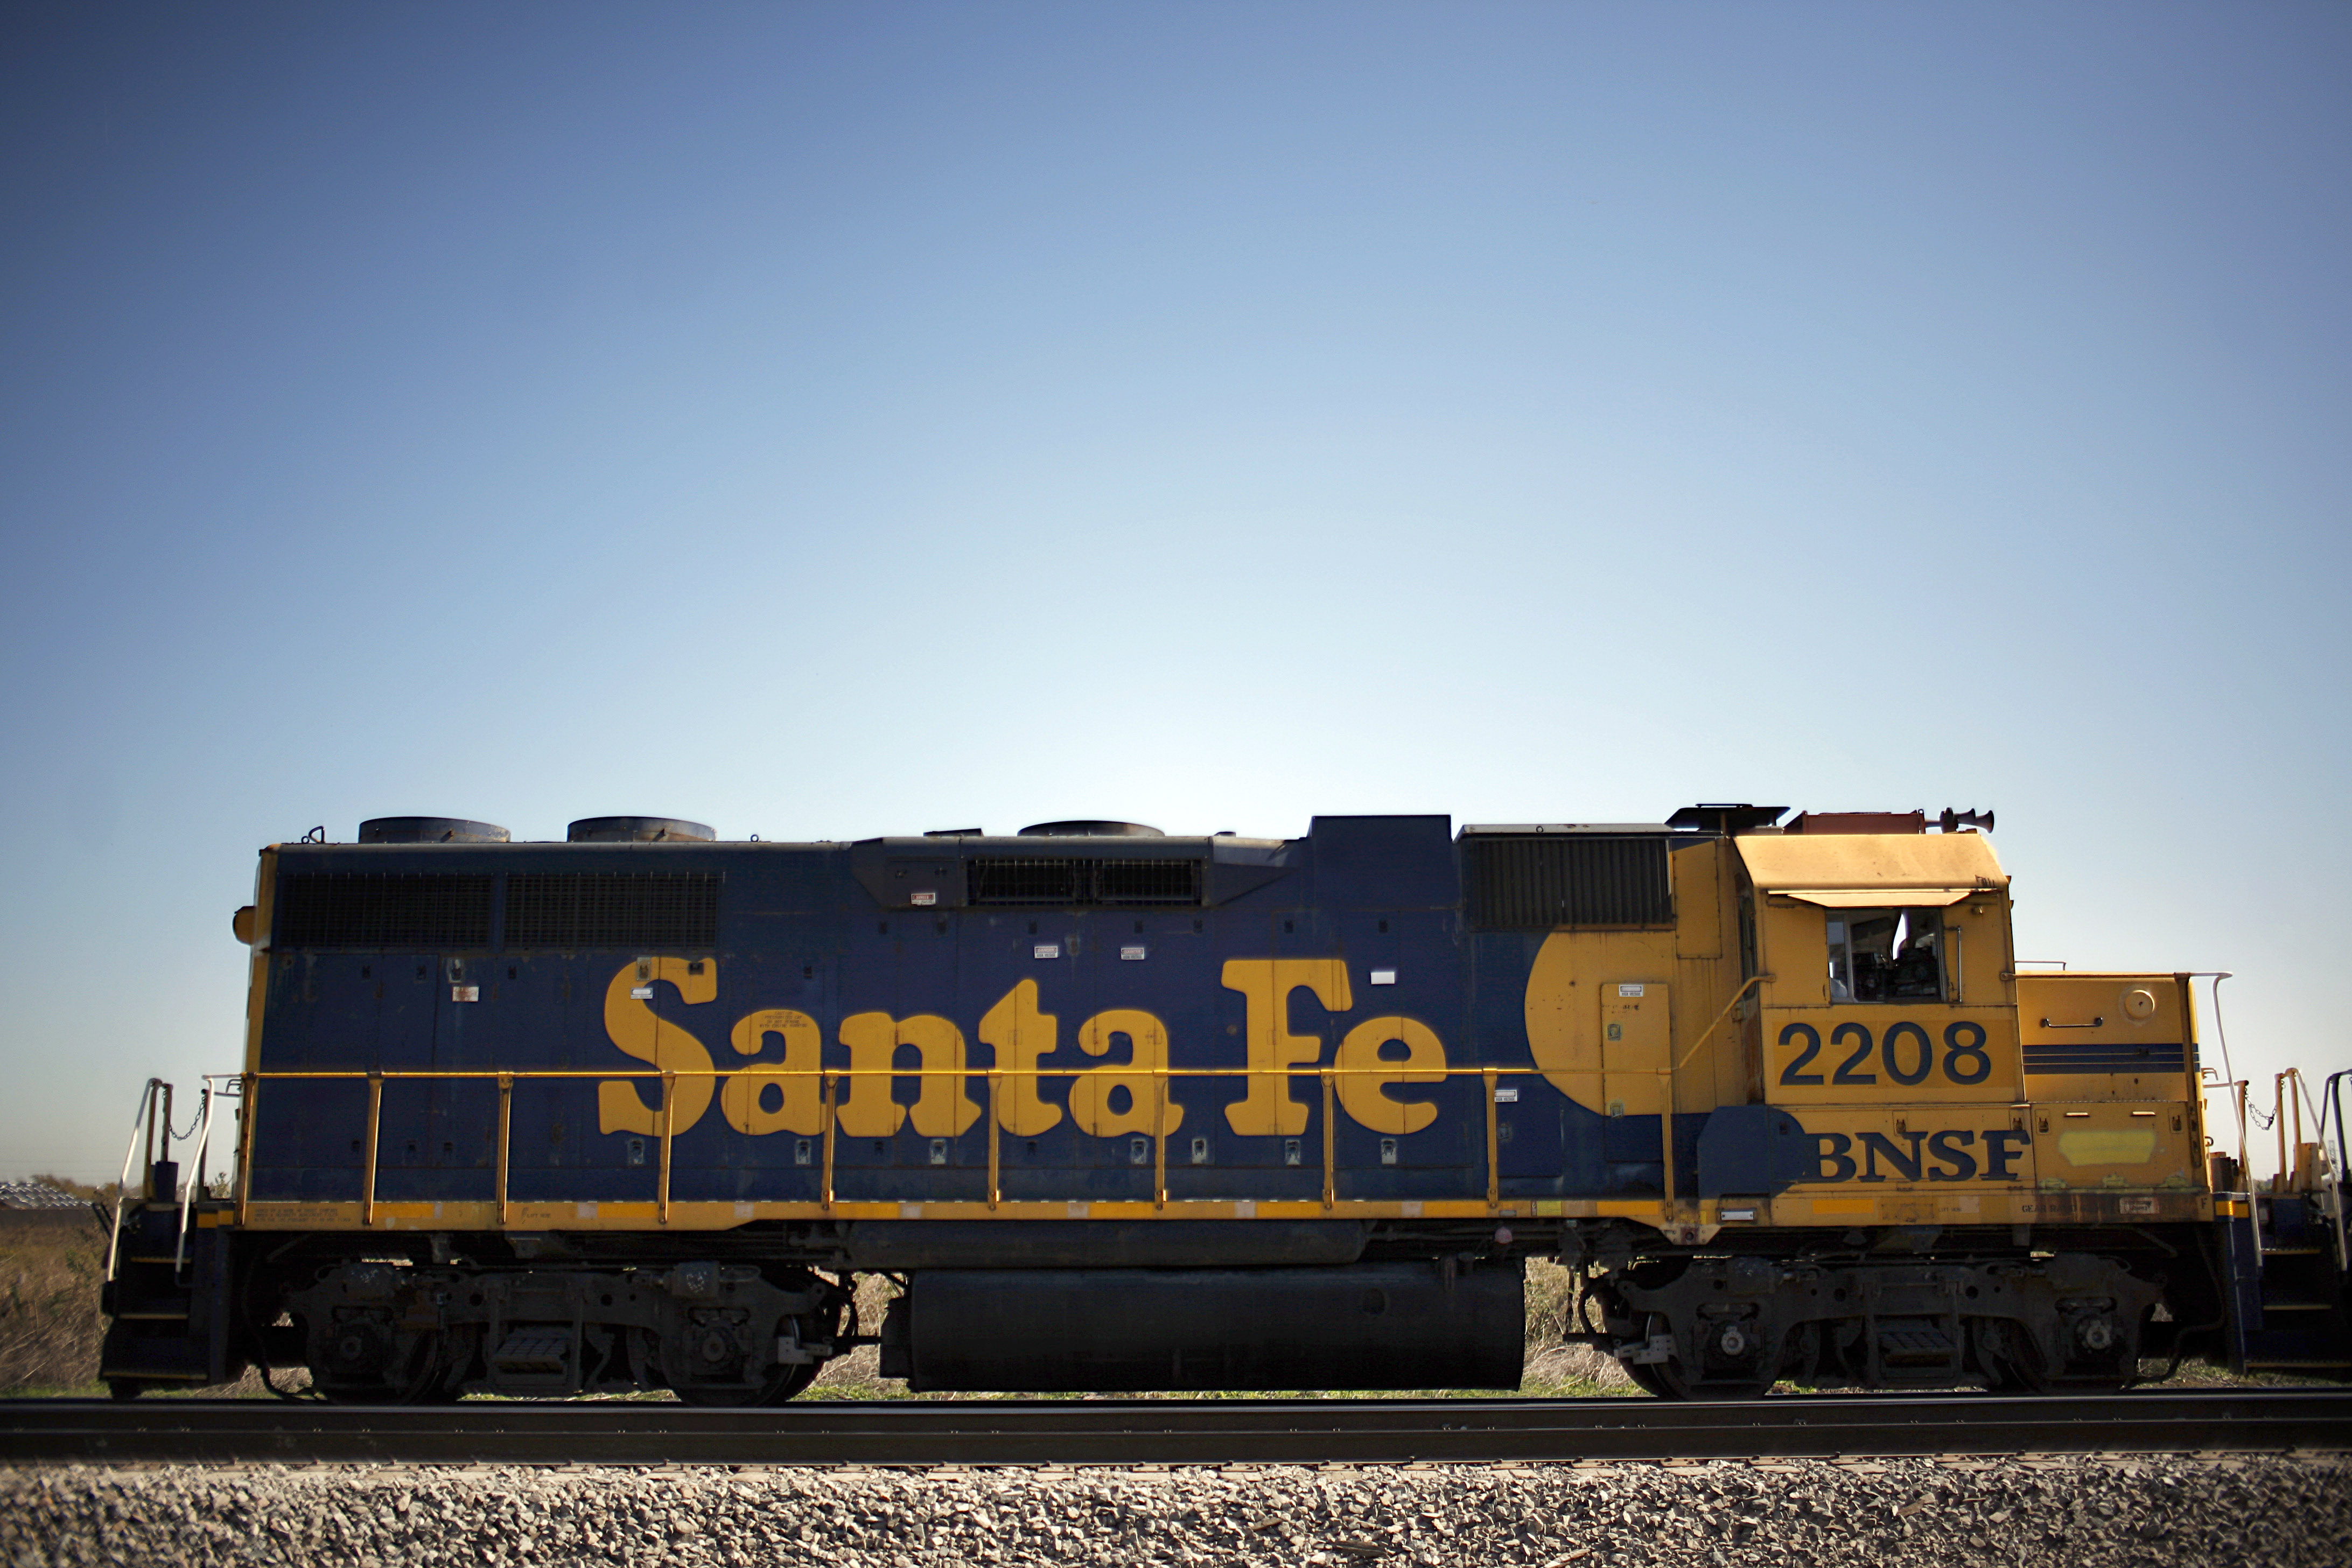 A locomotive sits idle near the Burlington Northern Santa Fe (BNSF) Railway Intermodal Facility on Nov. 3, 2009, in Haslet, Texas. The BNSF purchase was one of the biggest acquisitions of Warren Buffett's Berkshire Hathaway. (Tom Pennington/Getty Images)